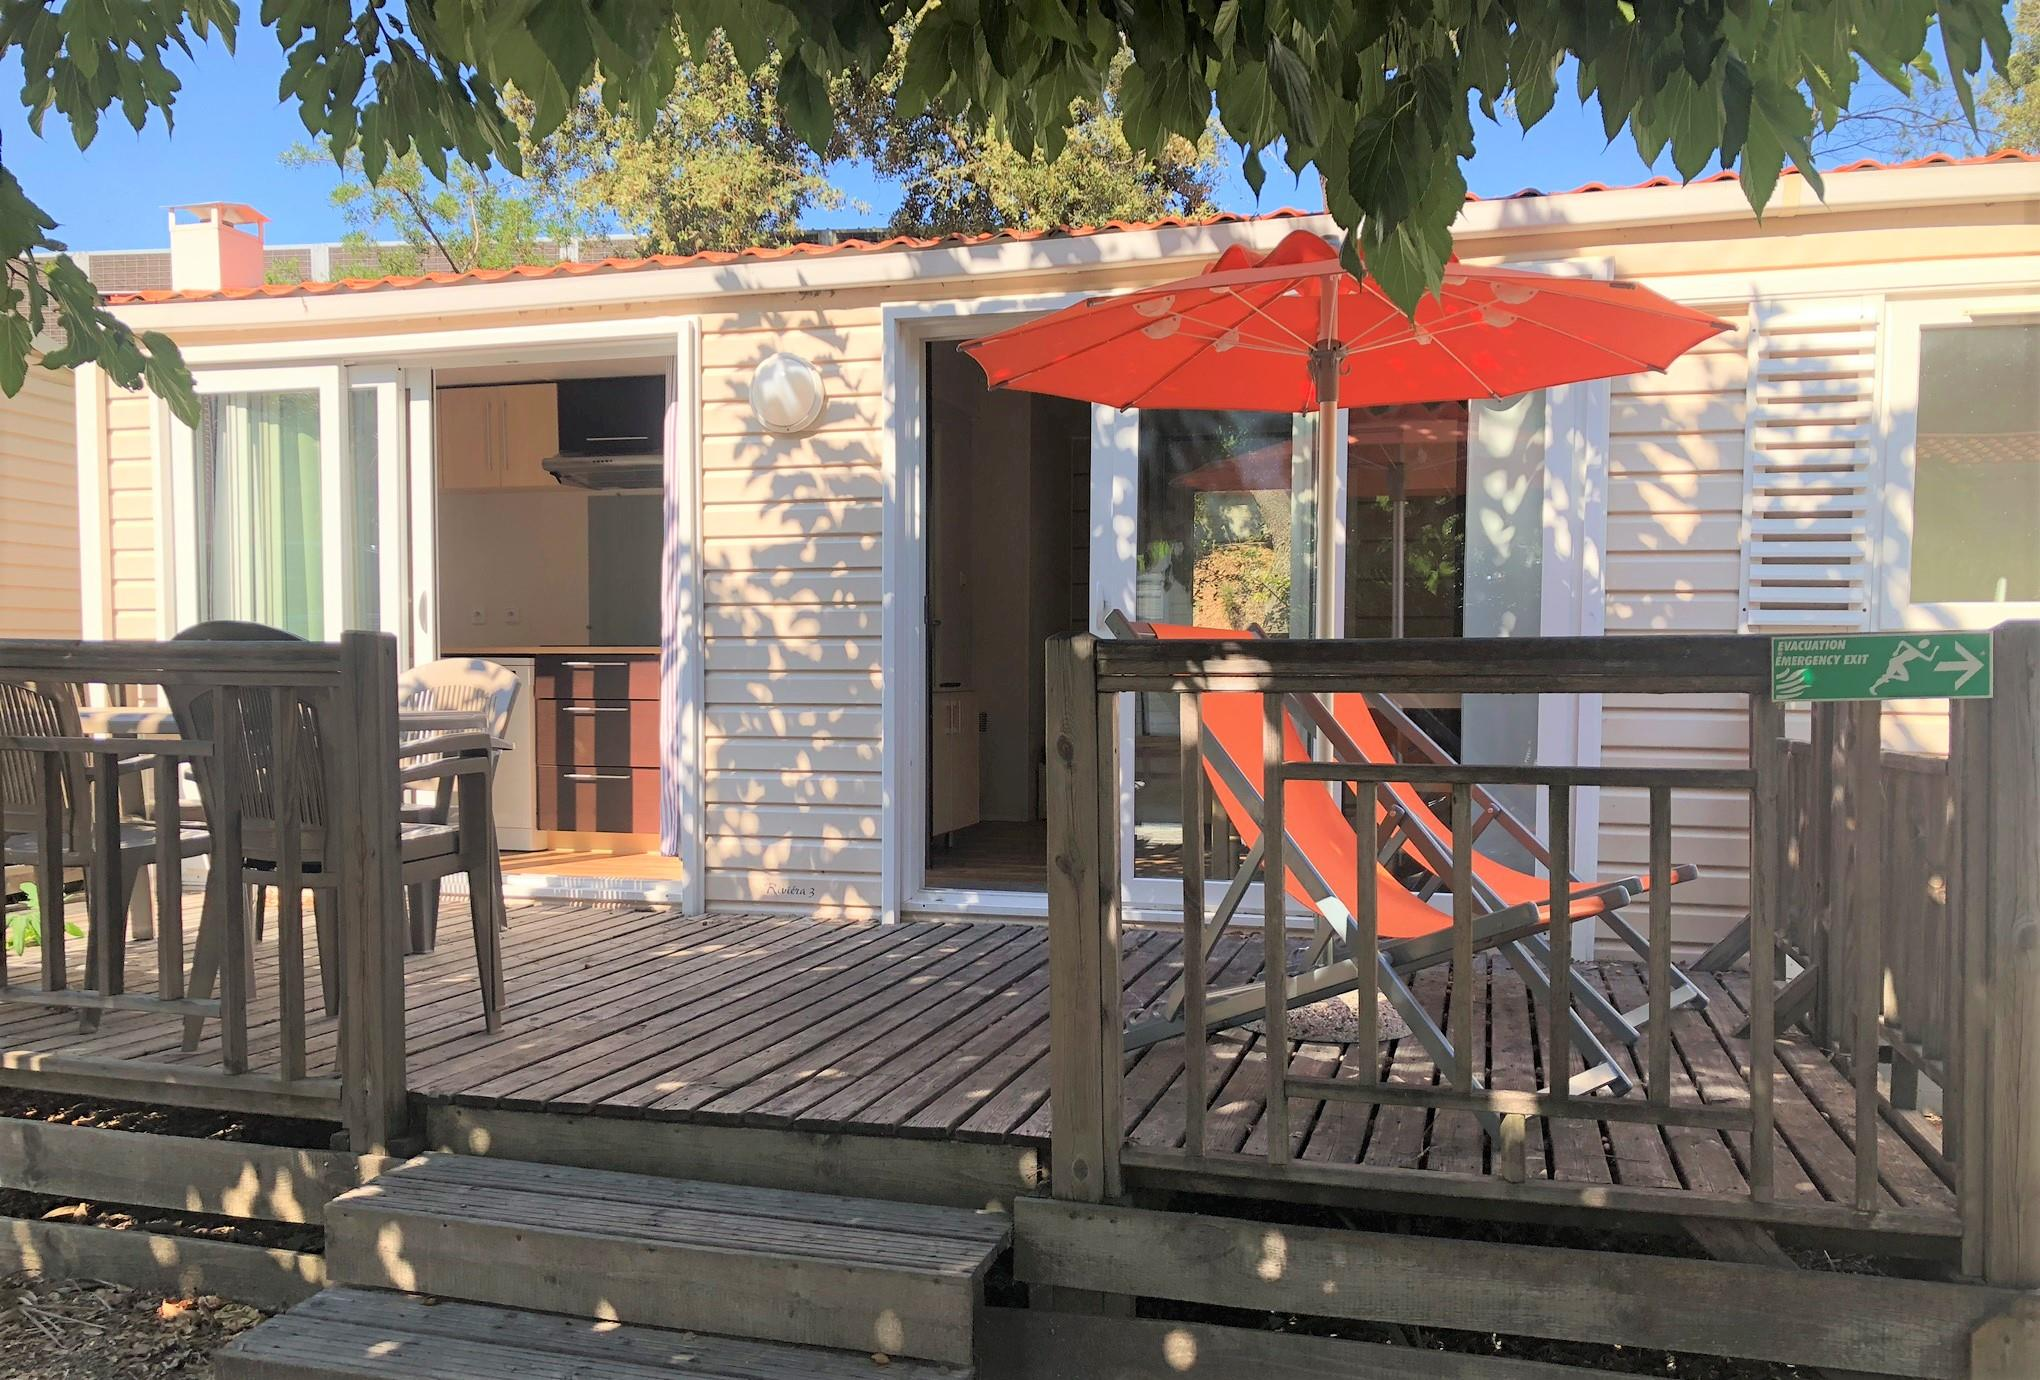 Location - Cottage Riviera Club Prestige 38 M² - 3 Chambres - Terrasse Bois +  Climatisation, Tv - Camping Holiday Green